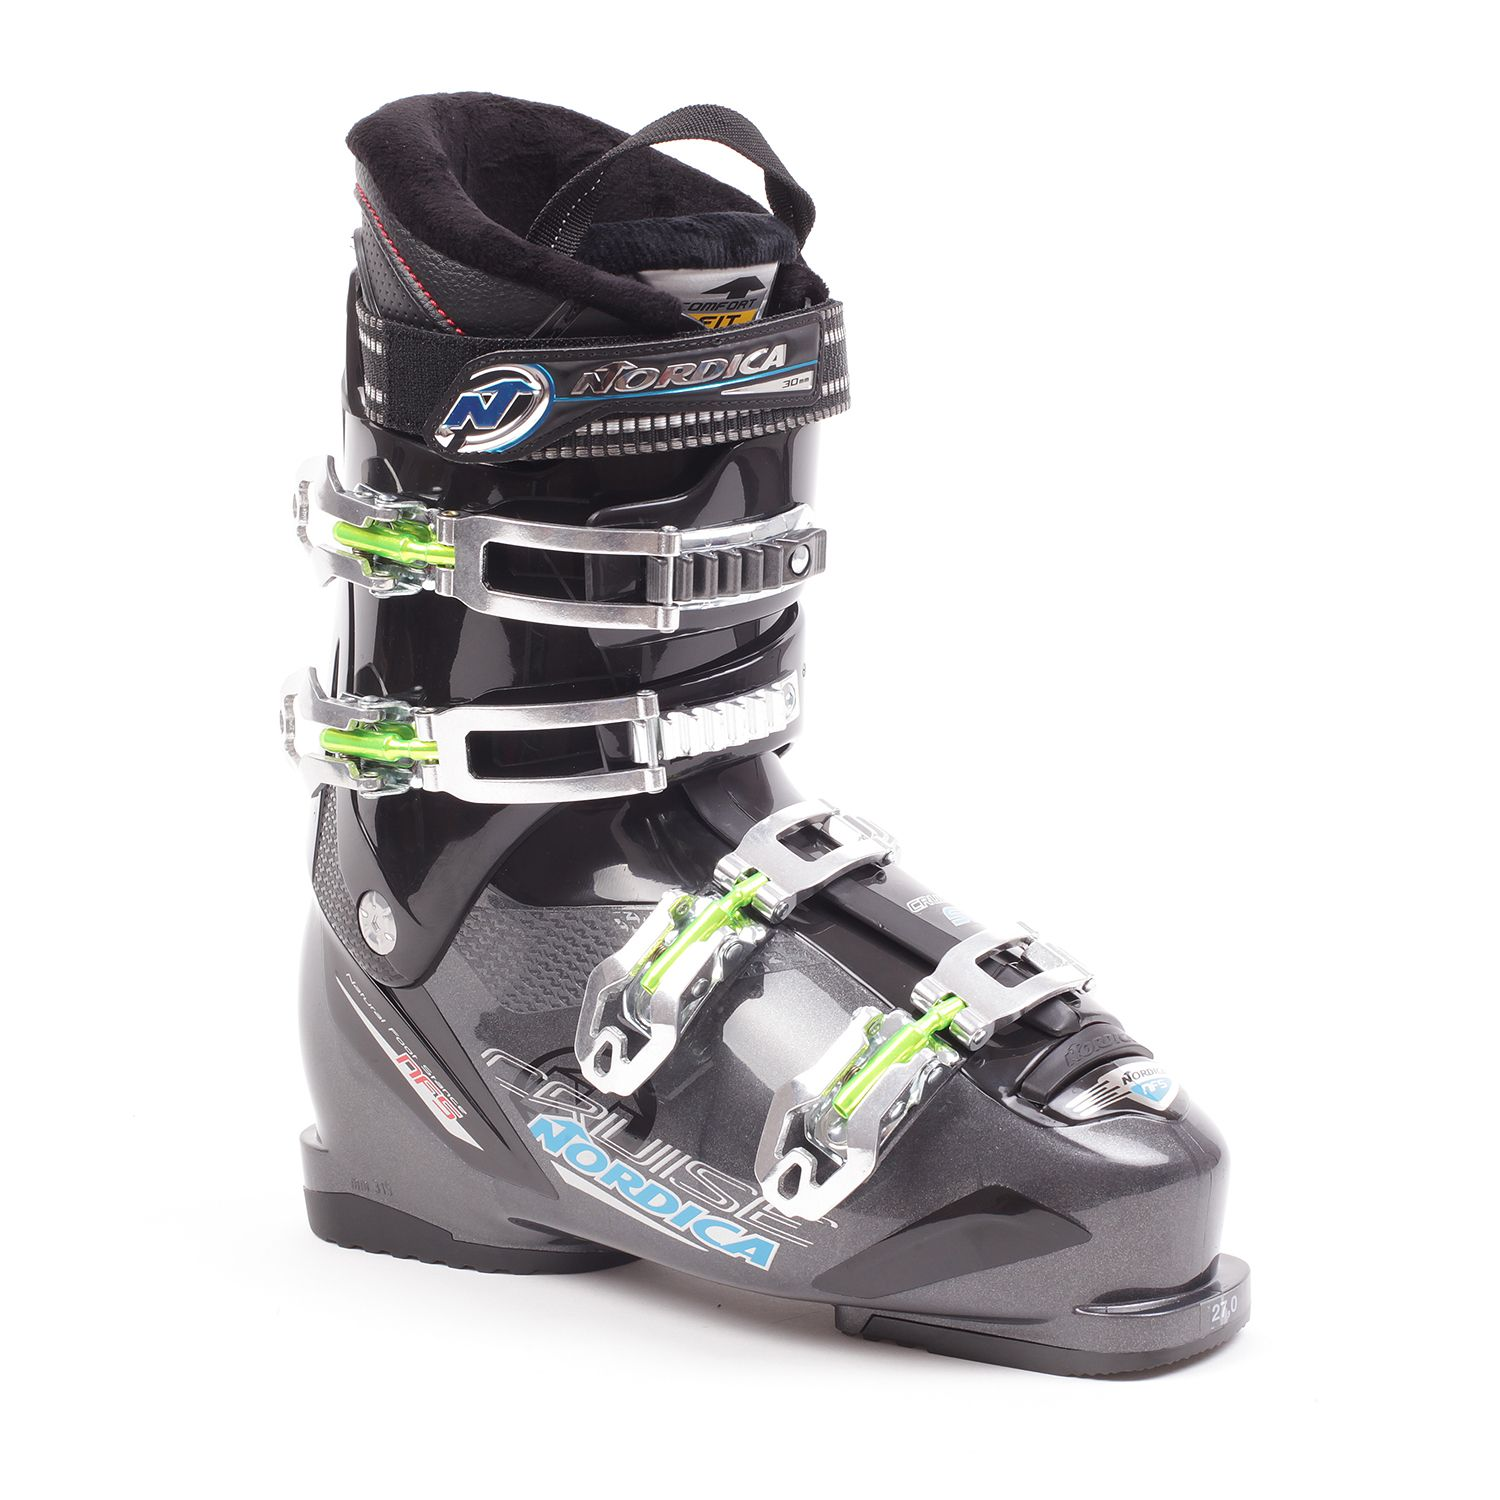 Nordica Cruise Sl Shoe Boots Boots Ski Boots